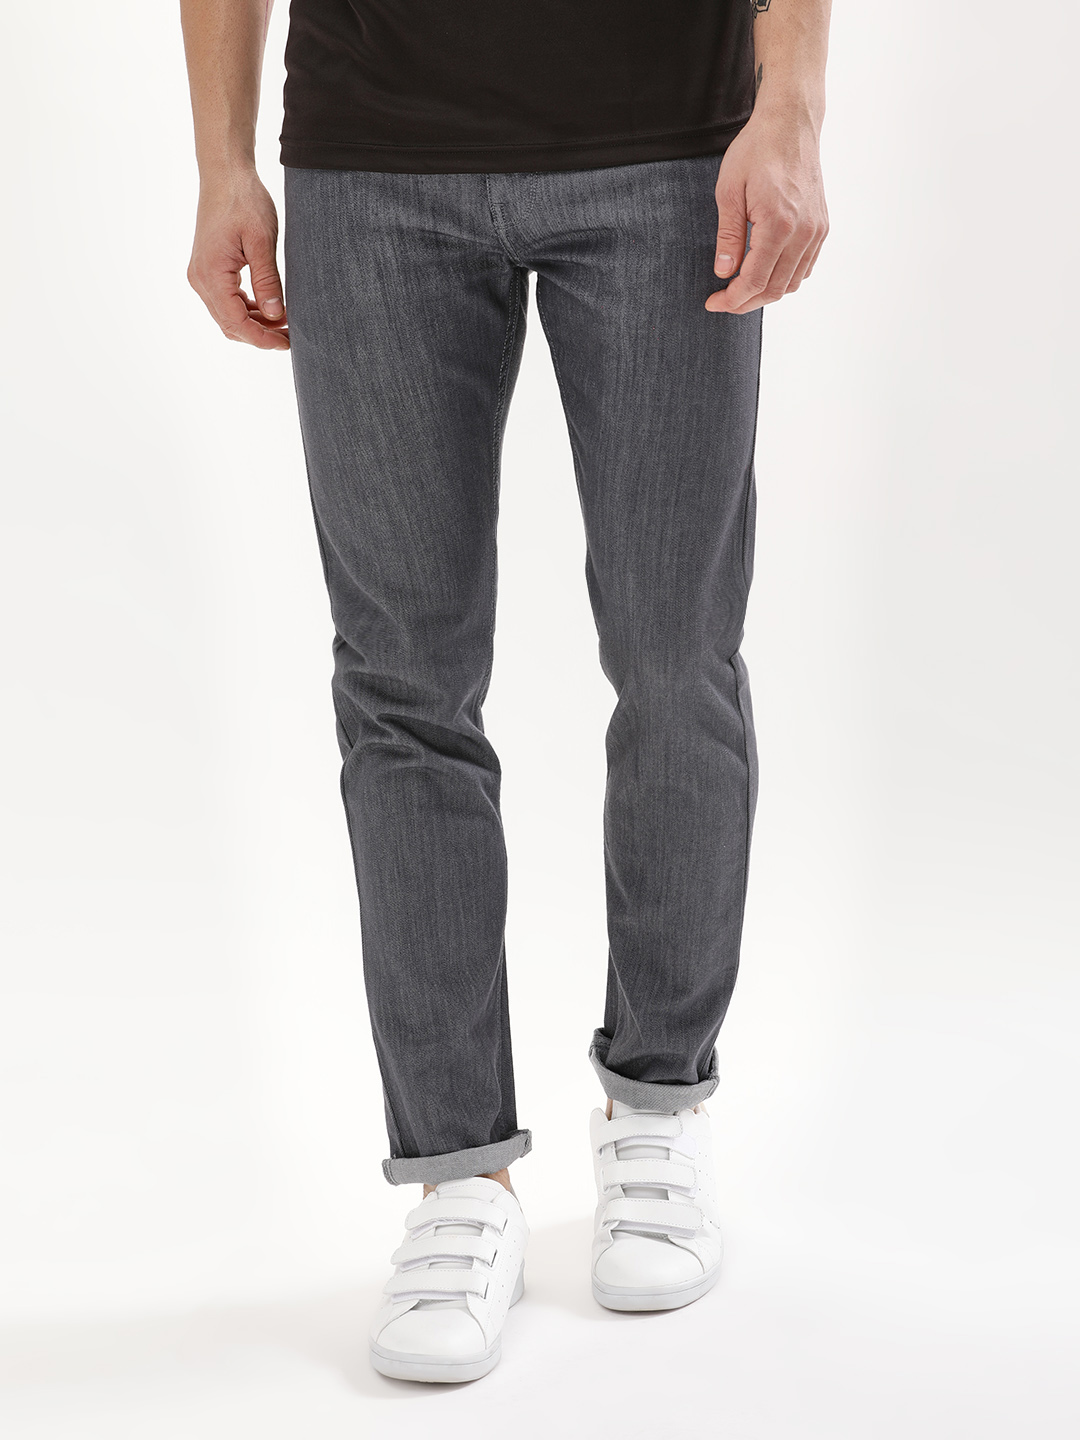 Blue Saint Grey Exclusive Charcoal Washed Slim Jeans 1